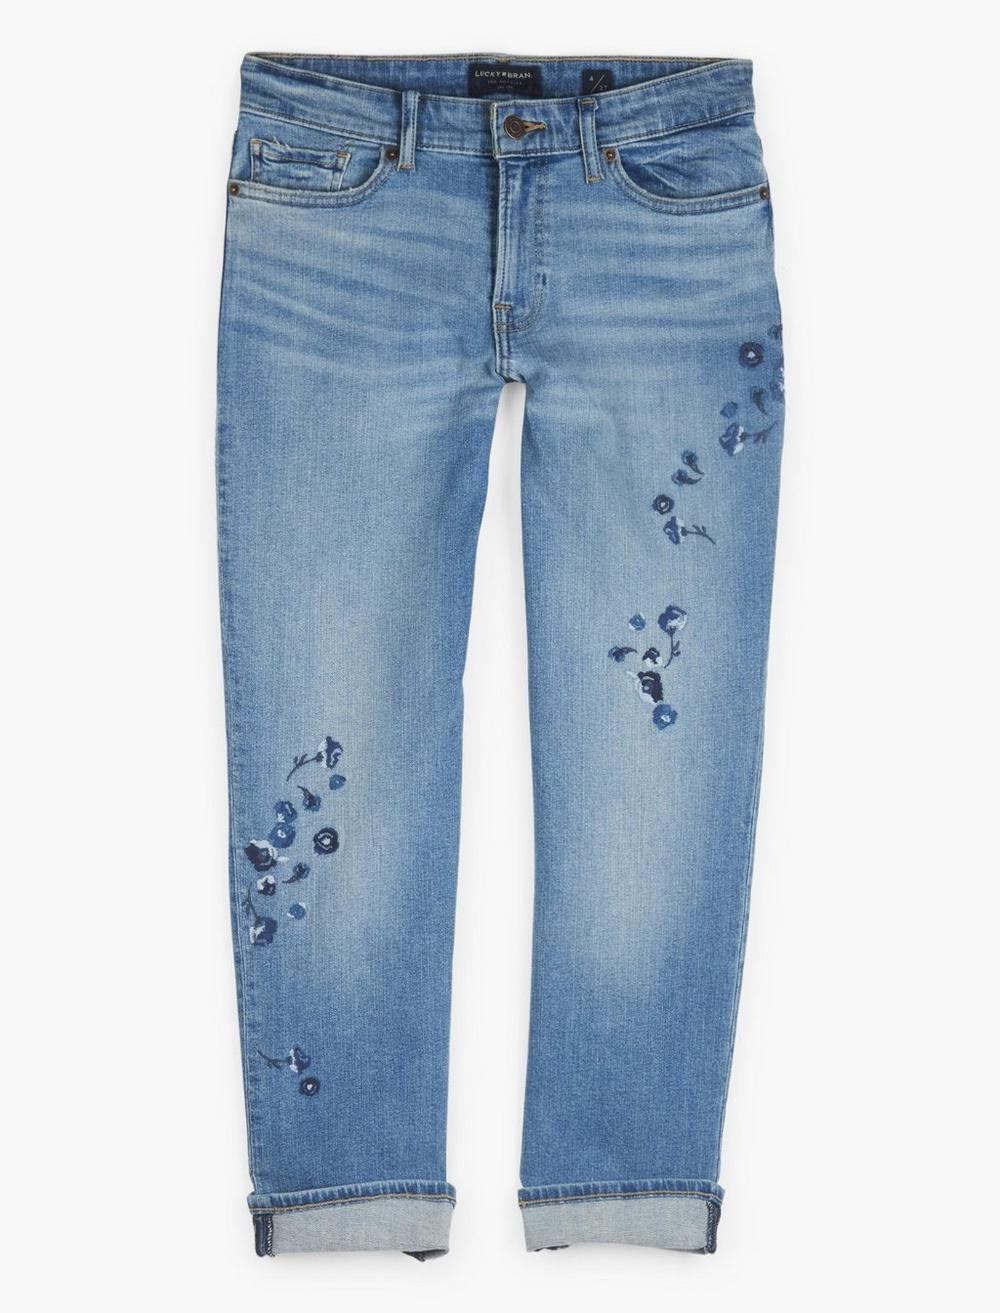 MID RISE SWEET CROP EMBROIDERED JEAN, image 1